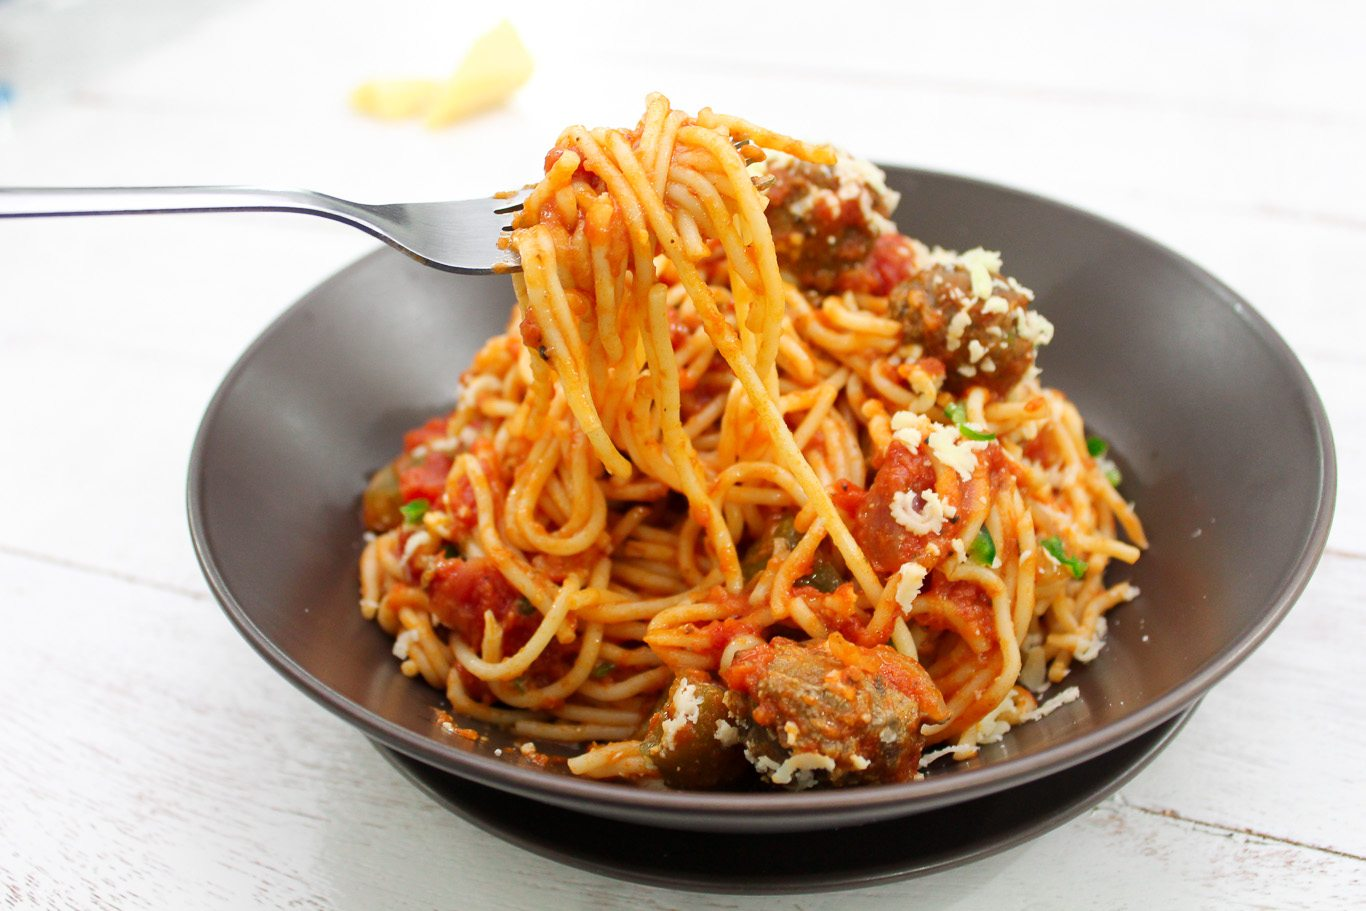 Better than Pastamania Spaghetti Bolognese with Meatballs